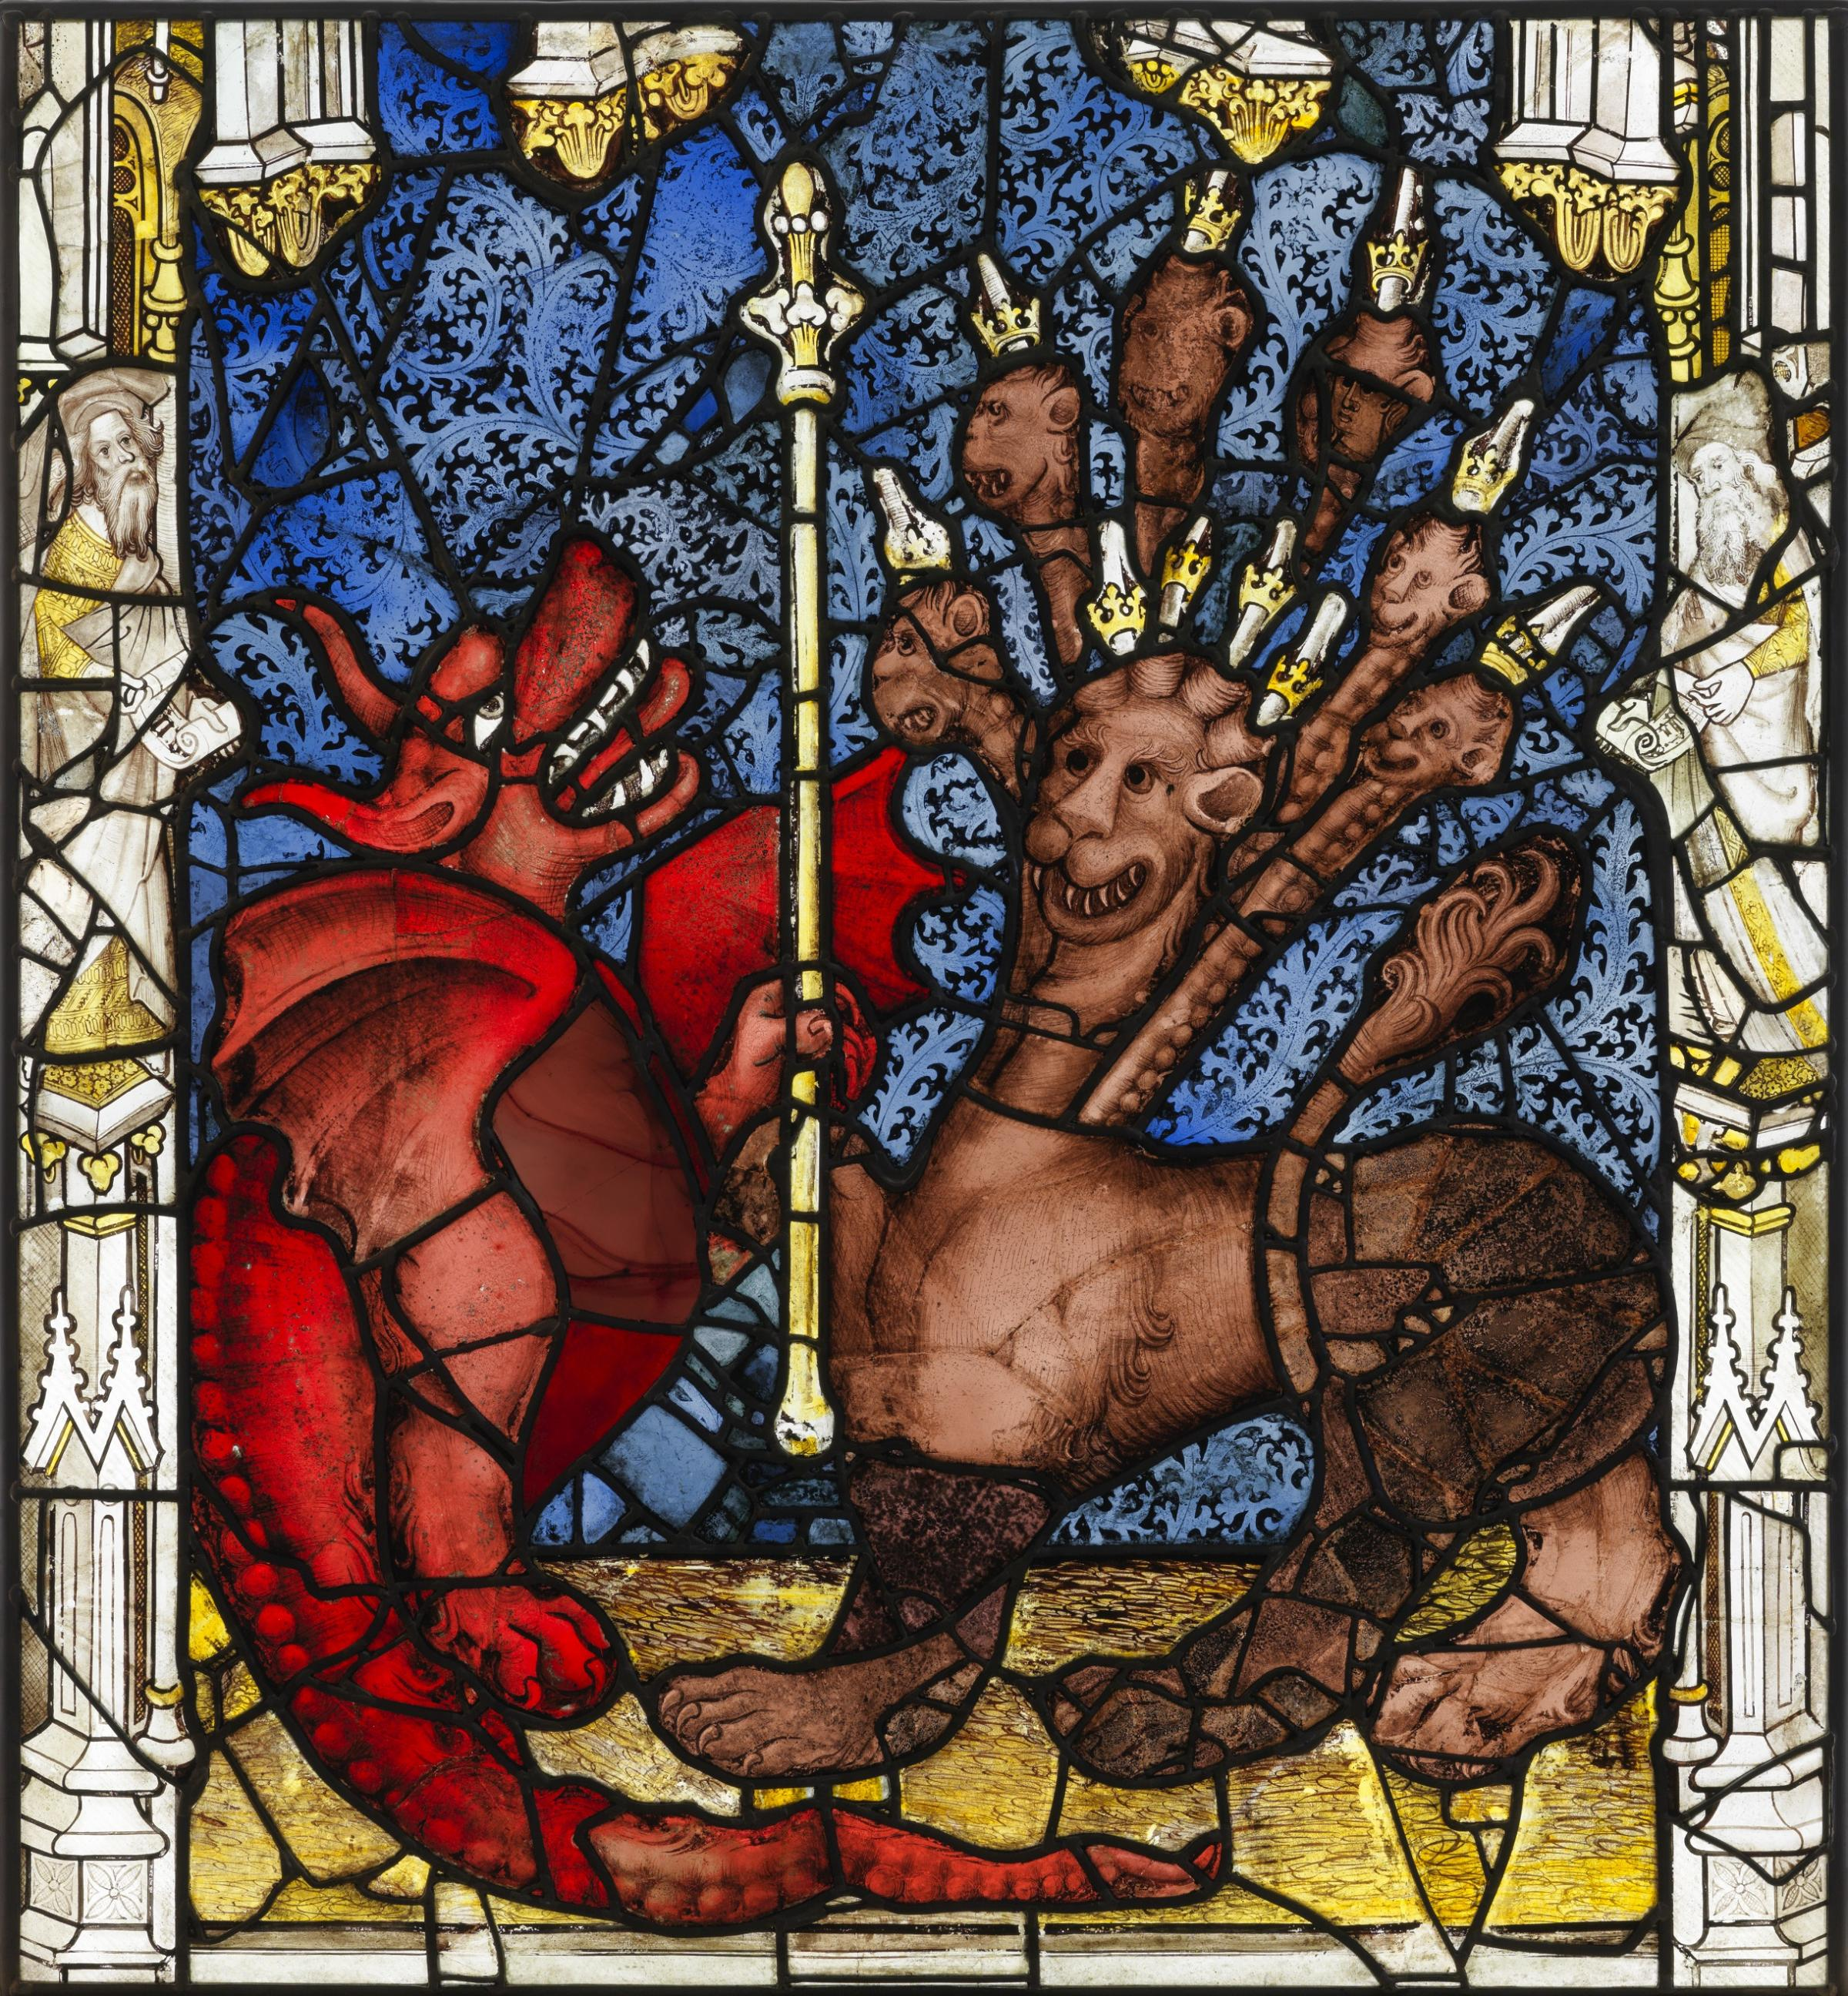 Revelation: The dragon and the beast, from York Minster's Great East Window